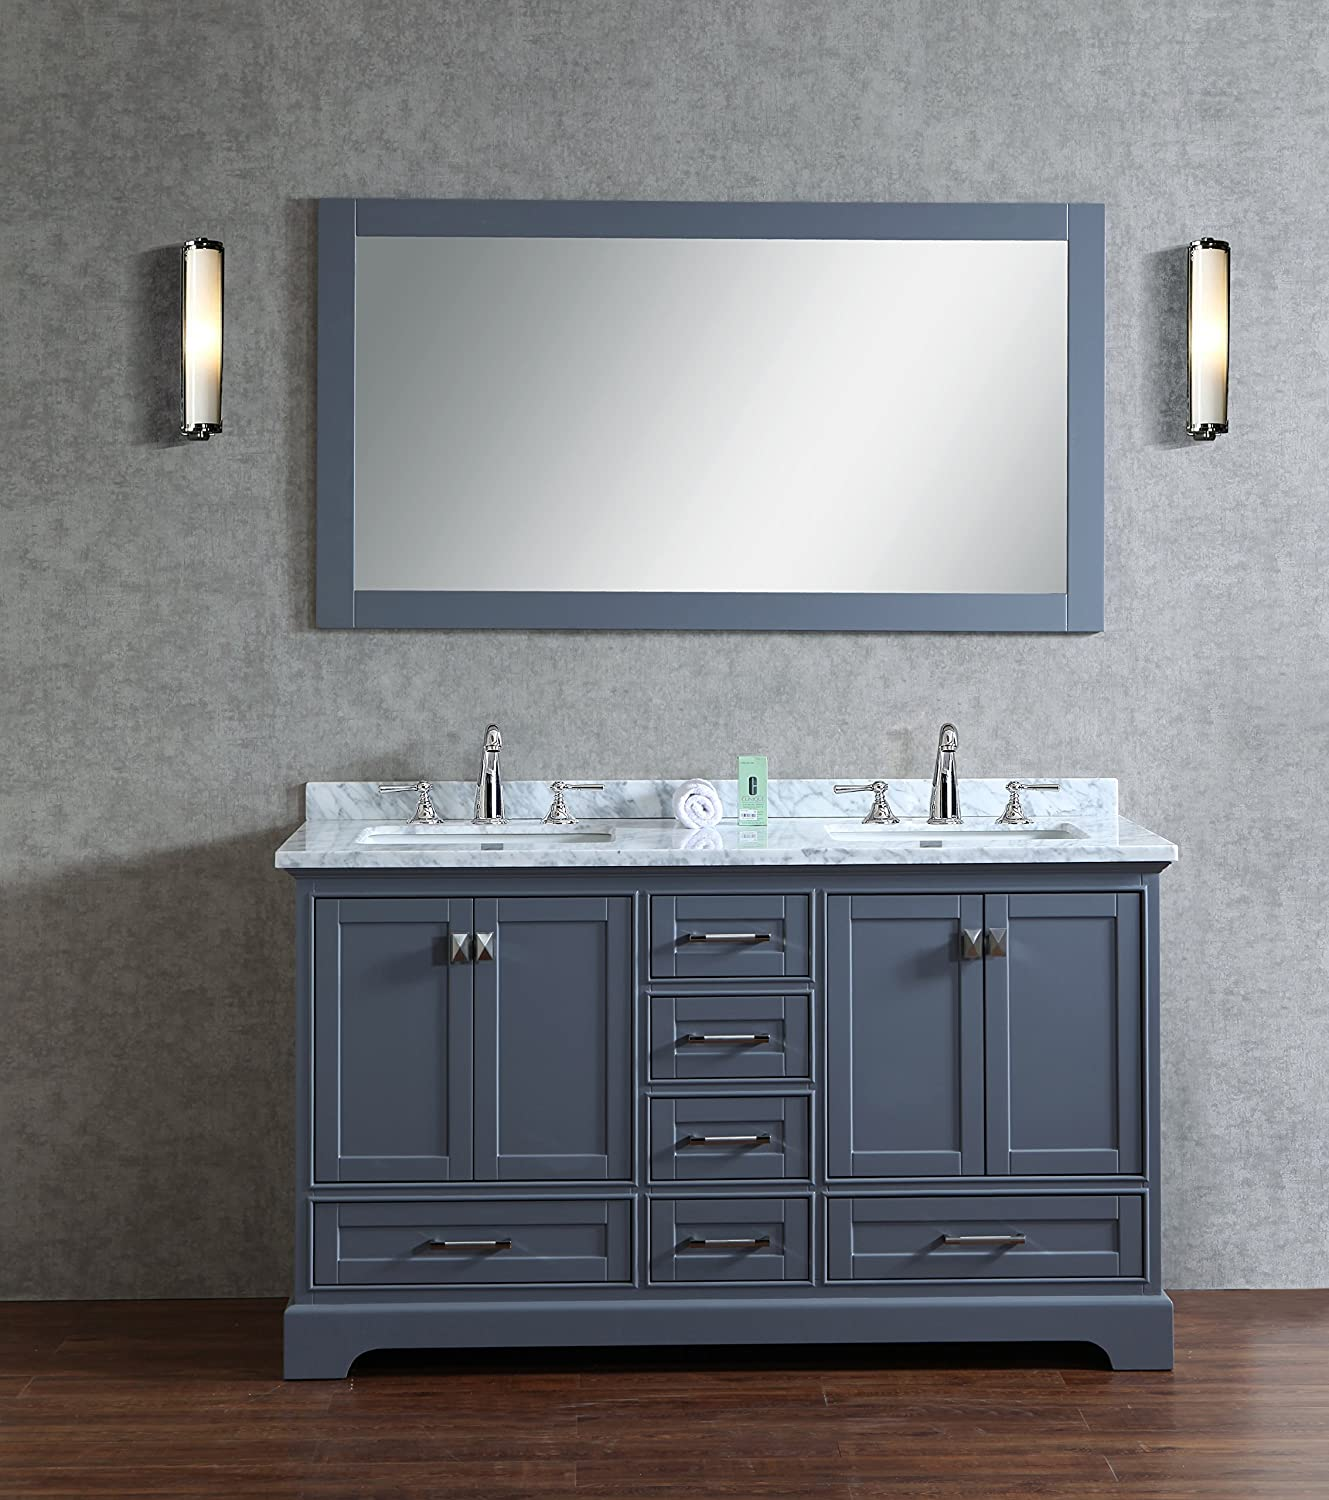 color gray ideas decorate with splendid drawer out added decorations pull in amazing design furnishings as bronze picture antique mirror sink storage wide bathroom double also vintage designs handle drawers vanity